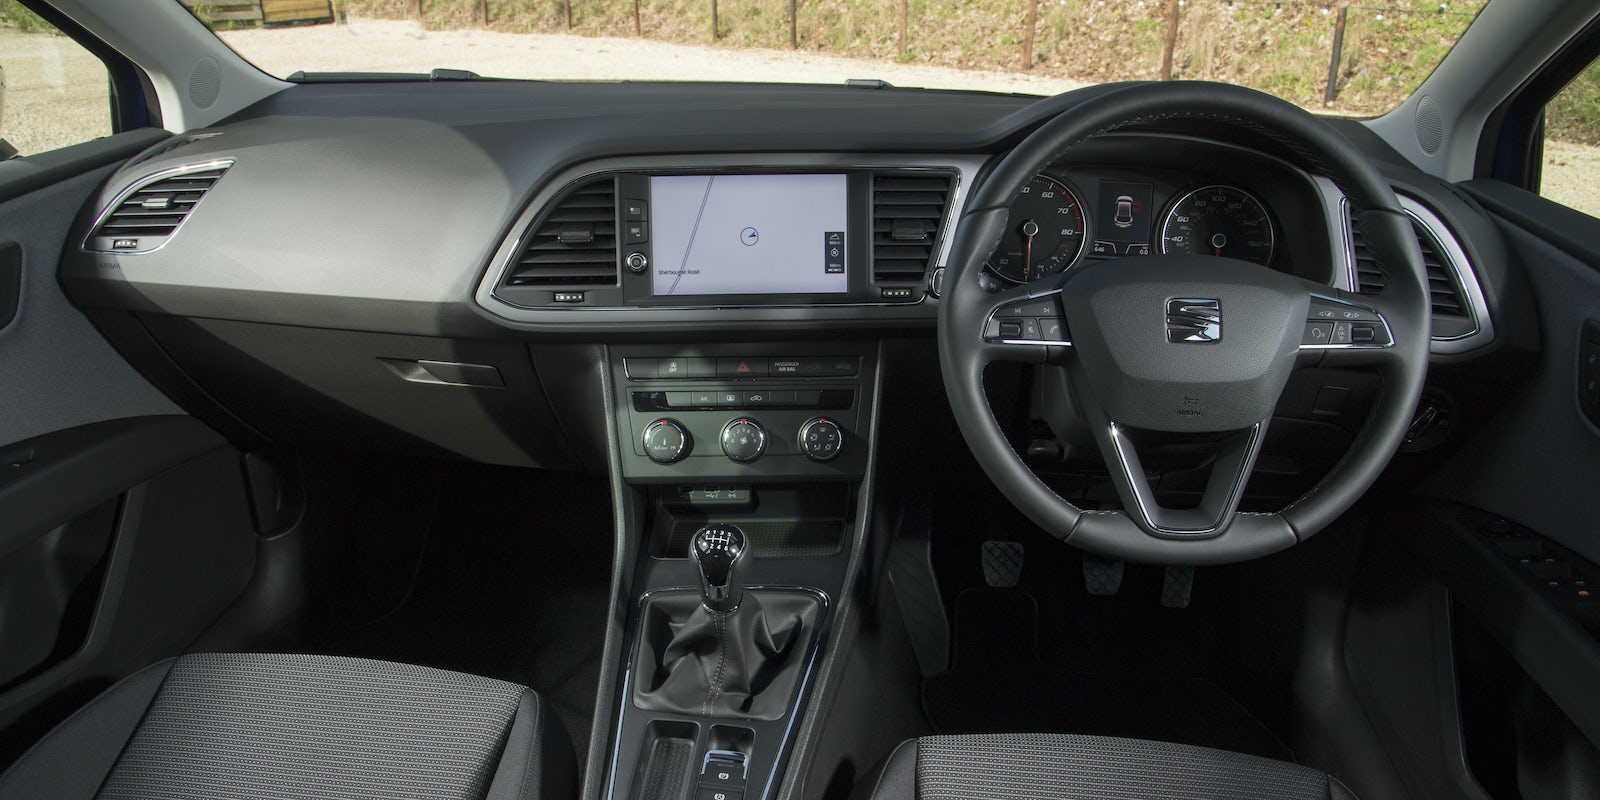 Seat leon specifications carwow for Seat leon interior